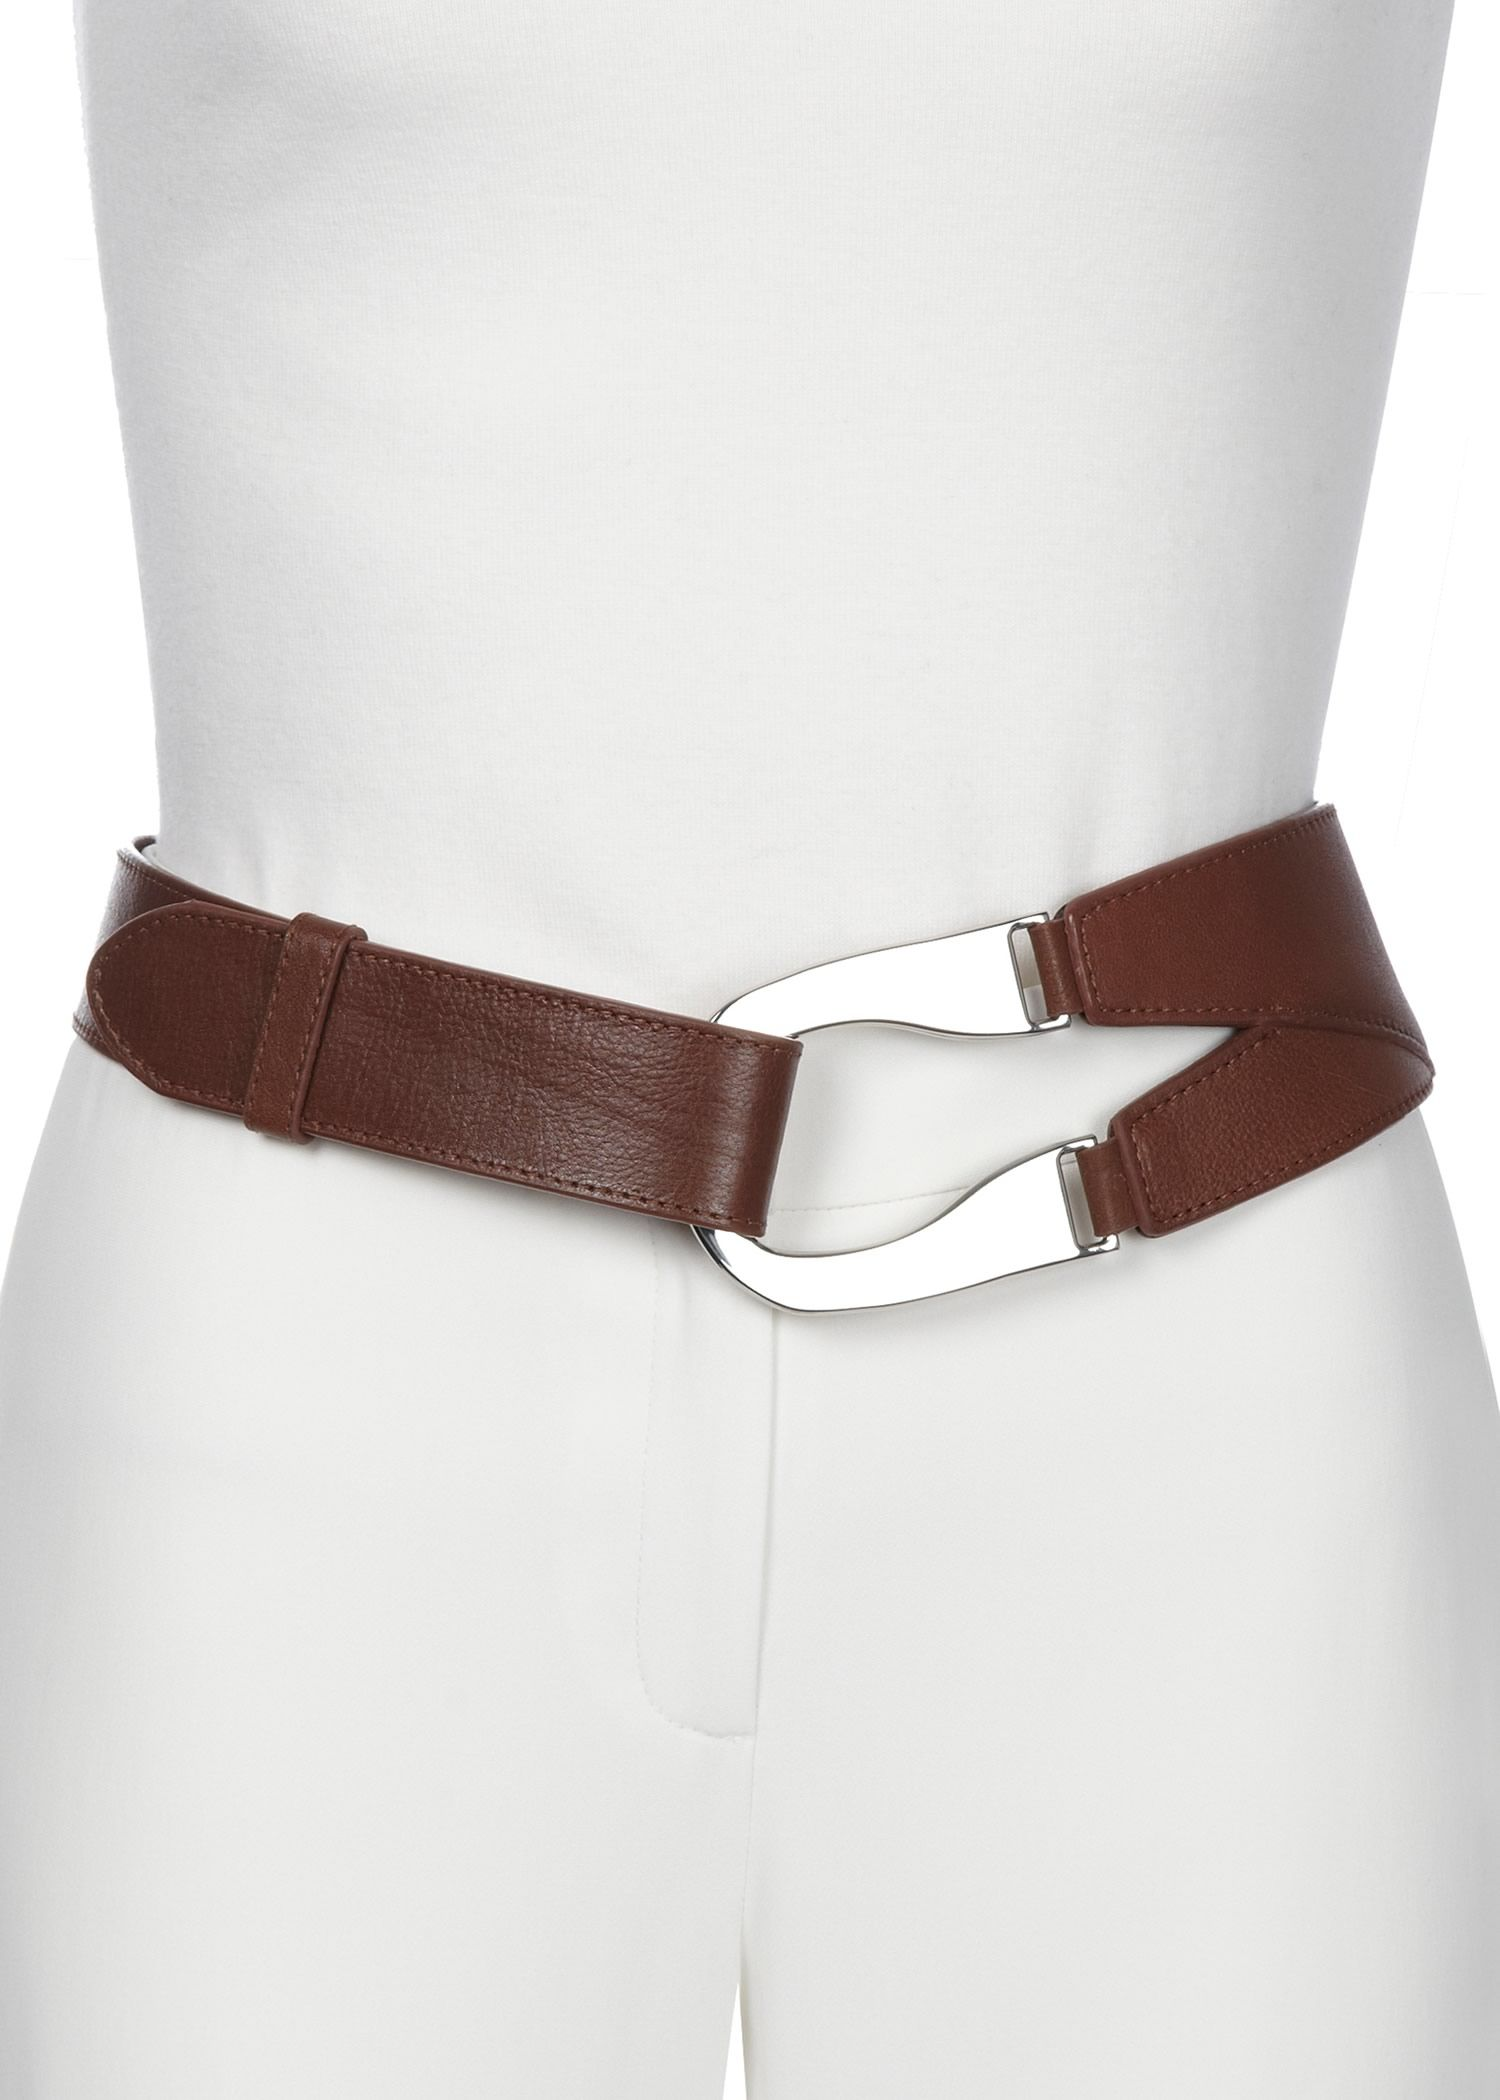 4eab59a1aa0 Plus-Size Horseshoe Buckle Leather Belt   Womens Belts   Designer Waist  Belts